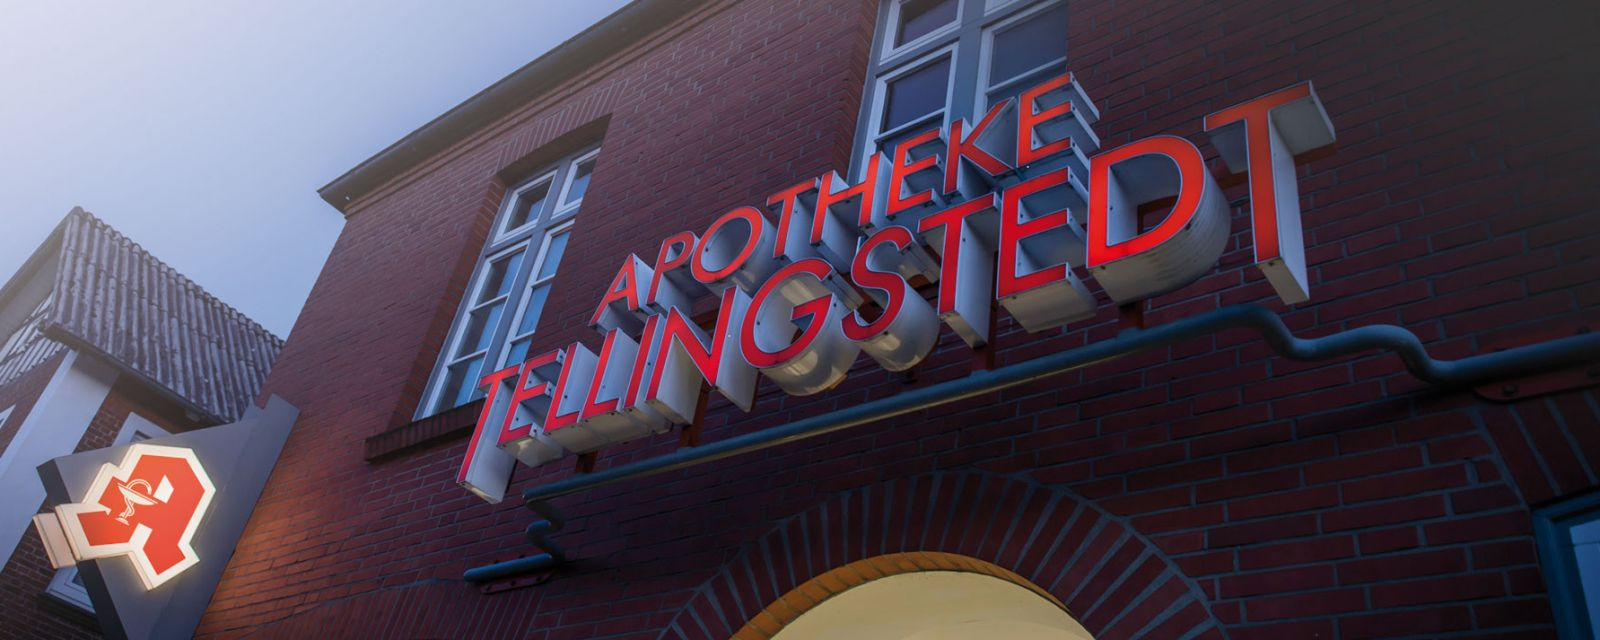 Apotheke Tellingstedt